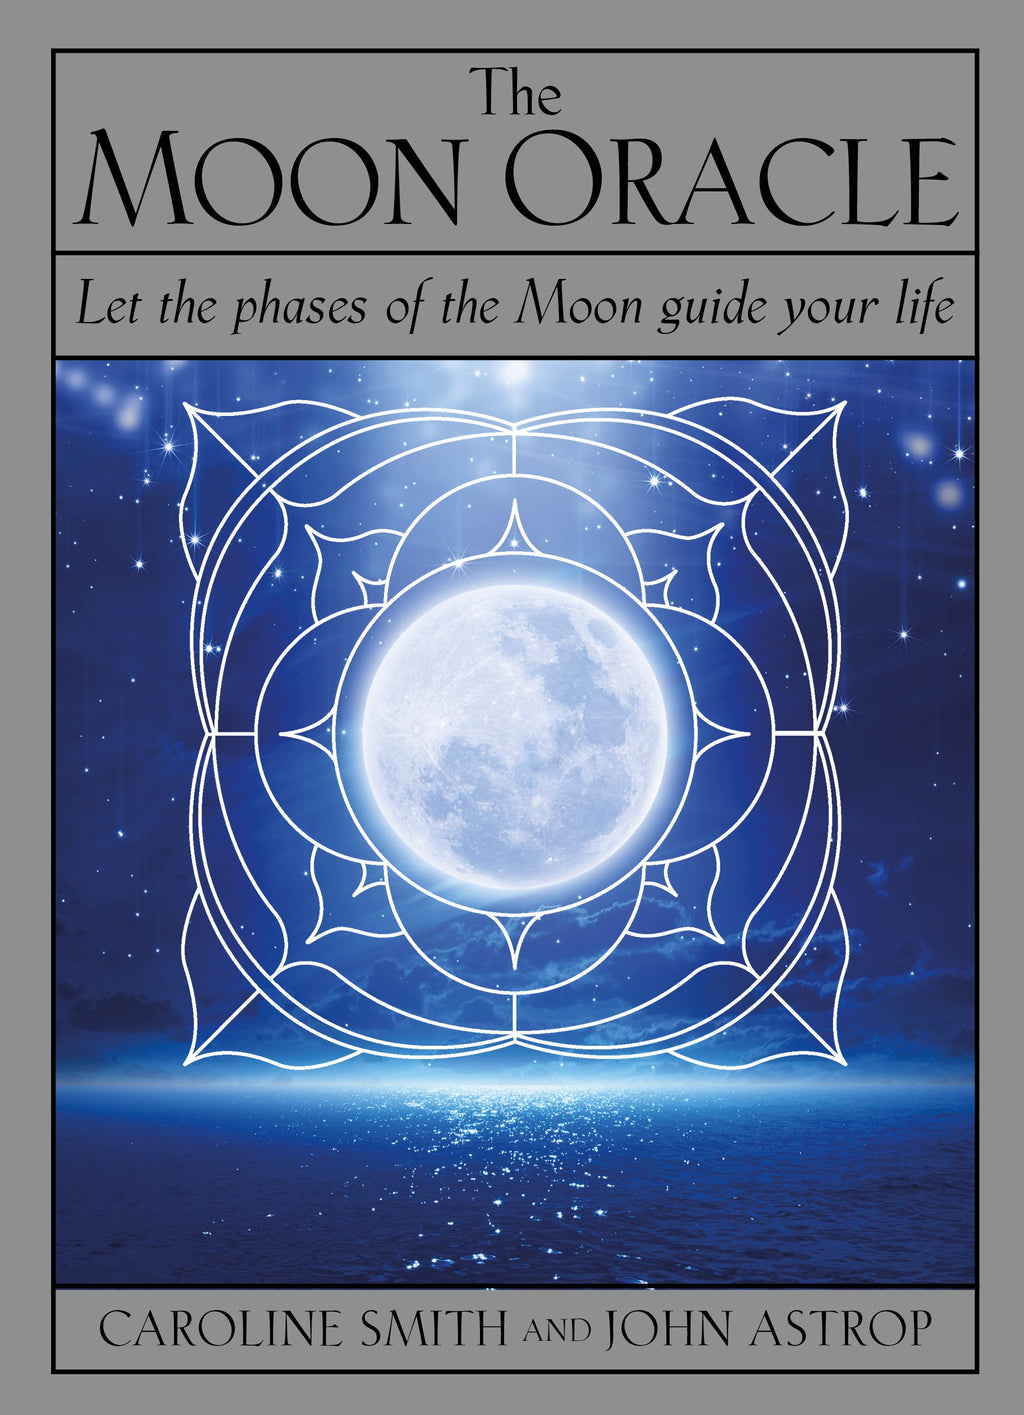 Moon Oracle by Caroline Smith & John Astrop